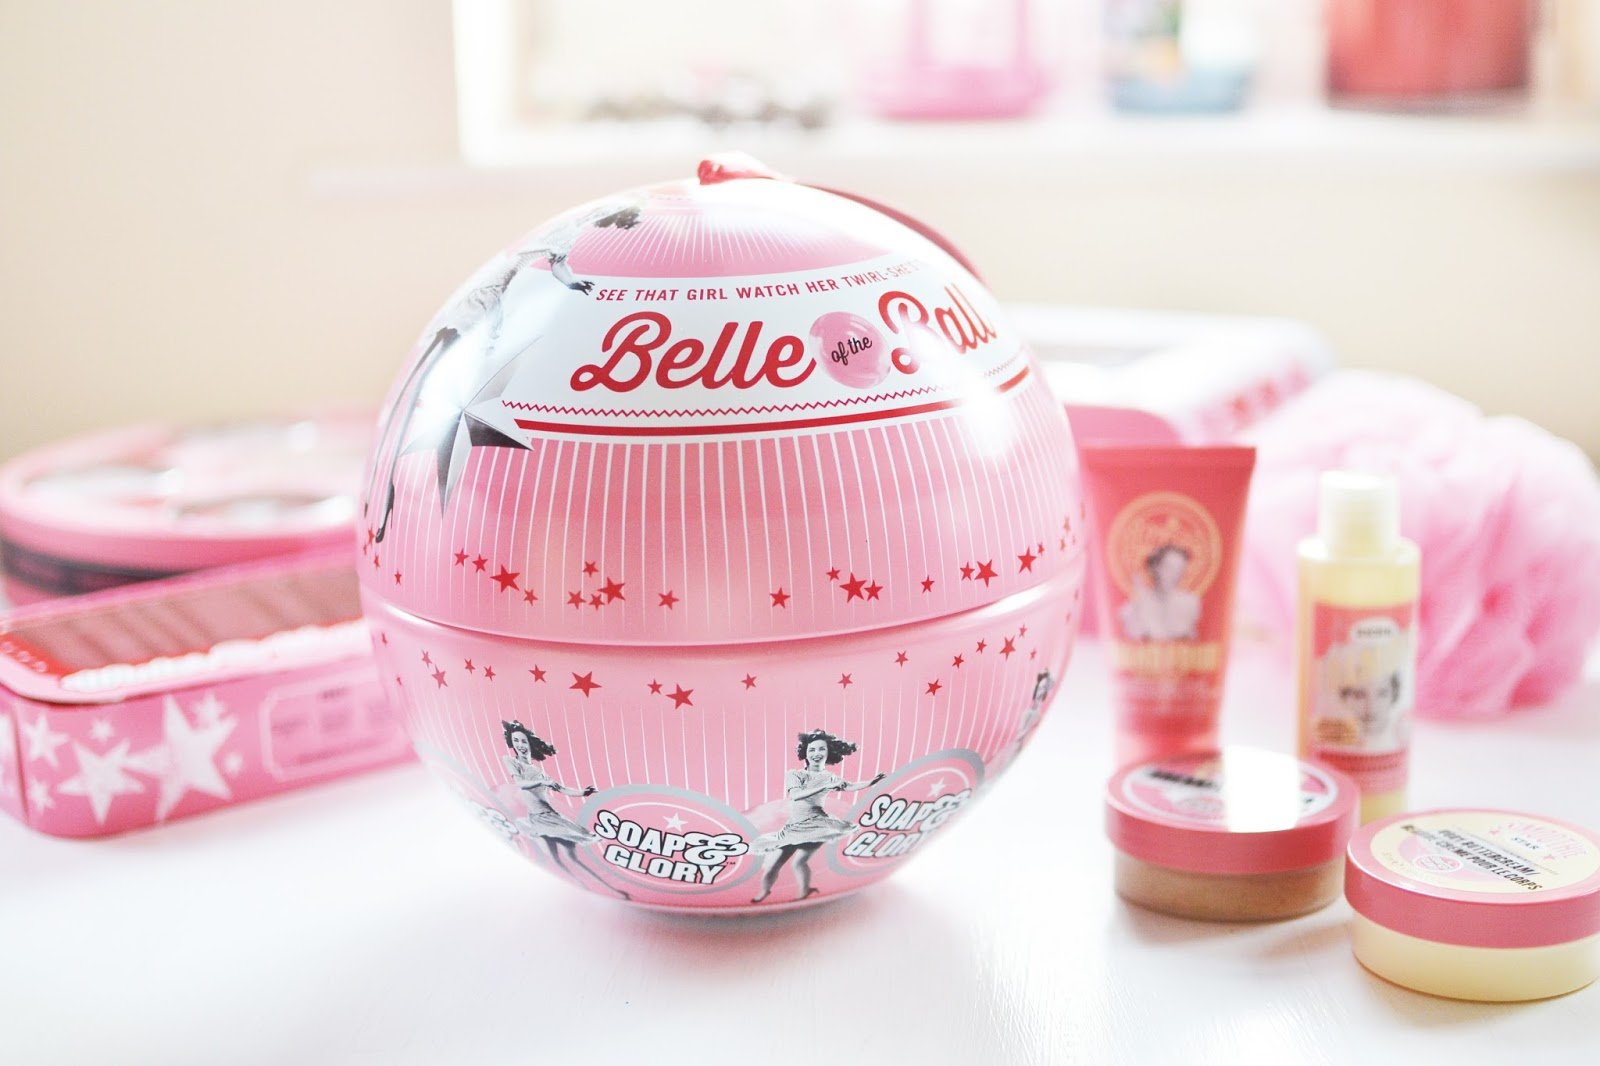 SOAP & GLORY belle of the ball